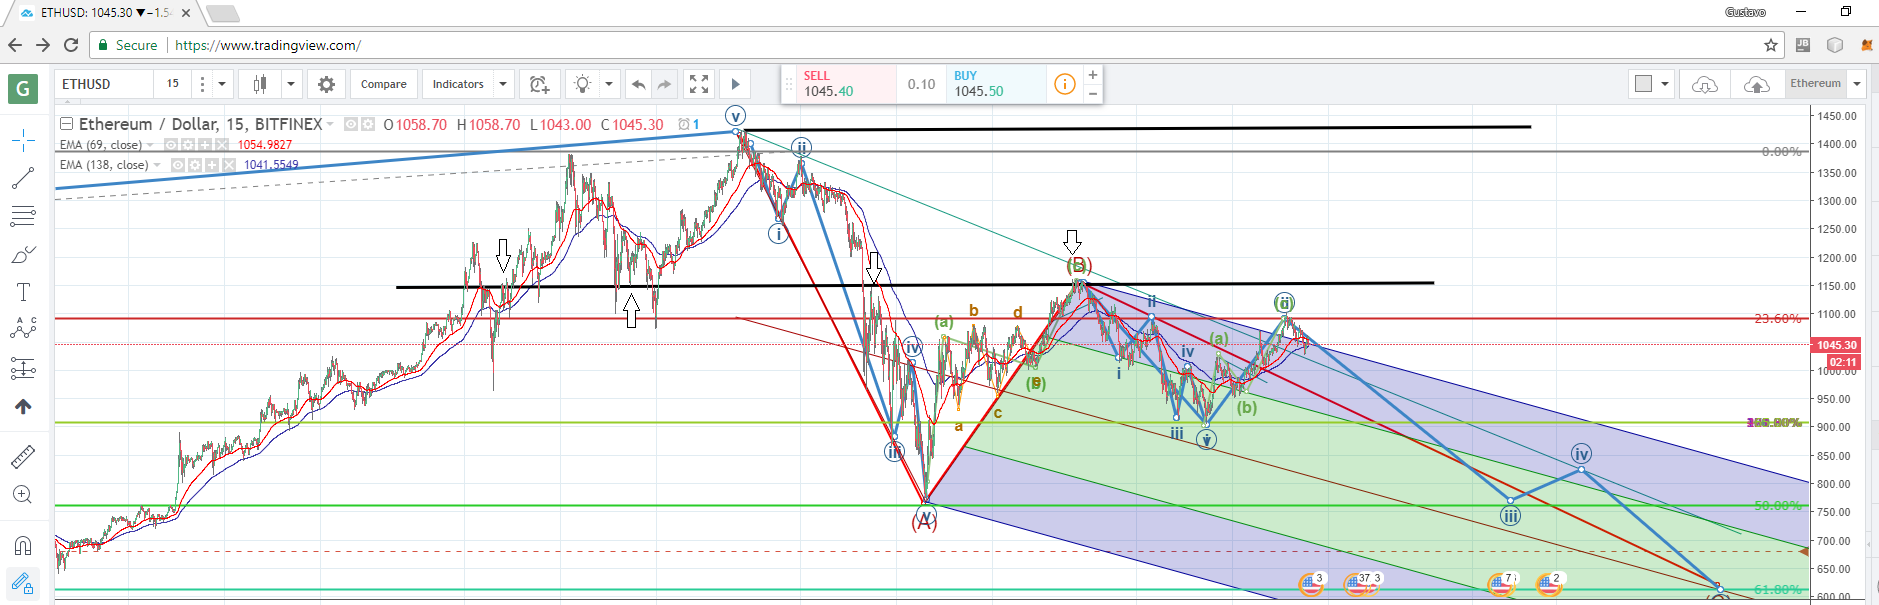 More downside to come?